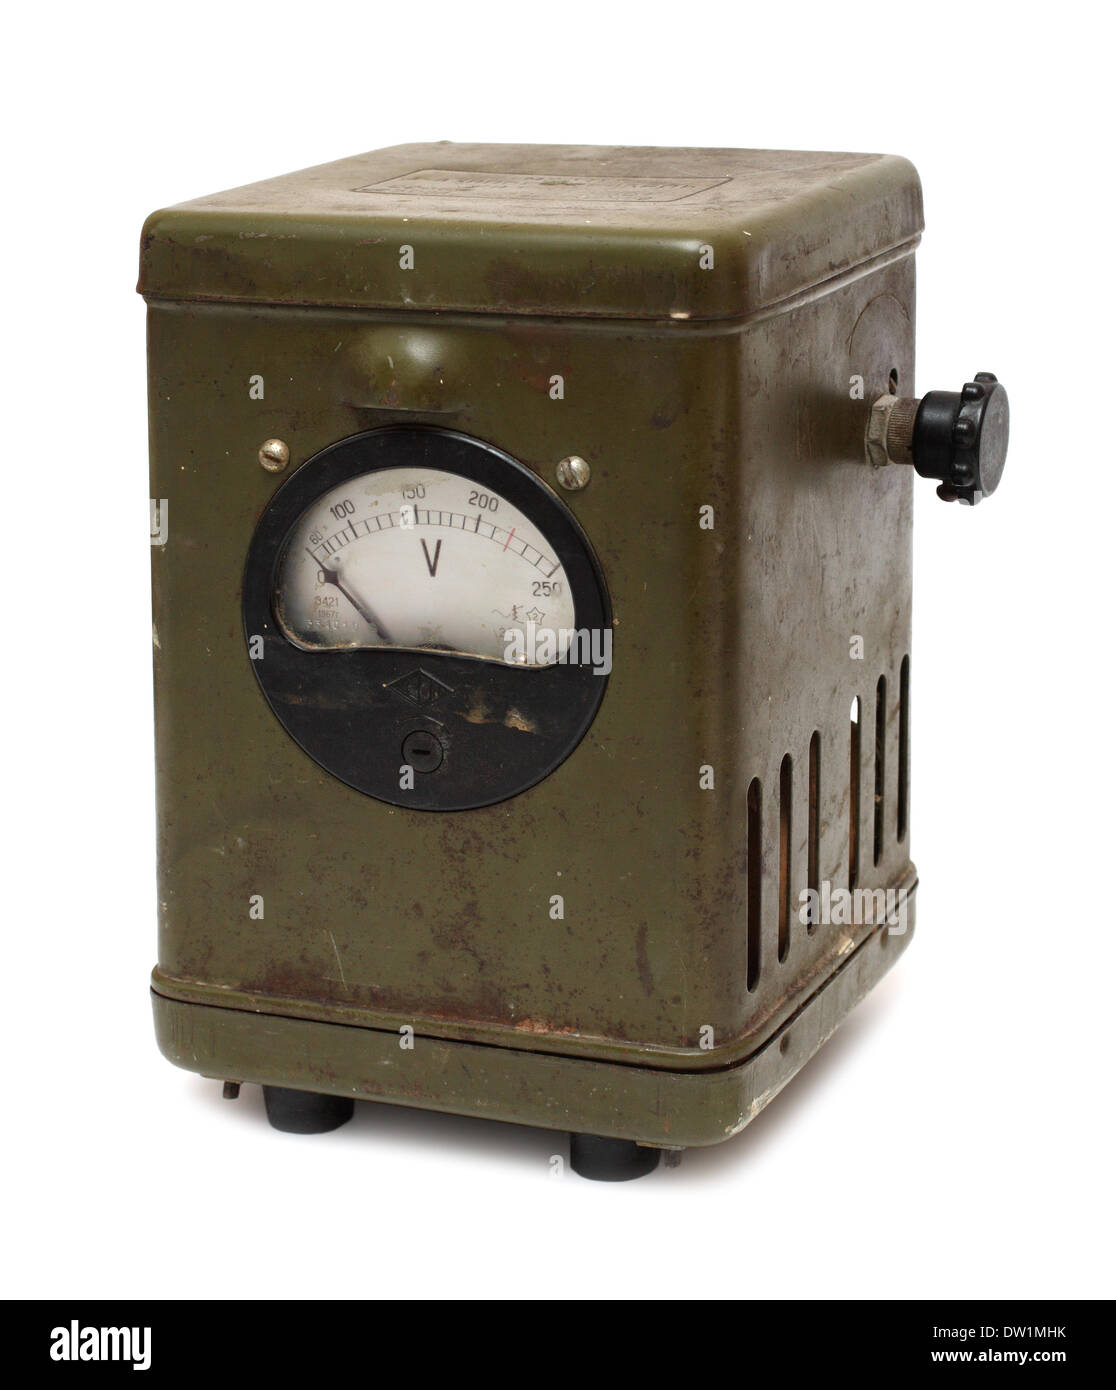 old obsolete electric voltmeter device - Stock Image